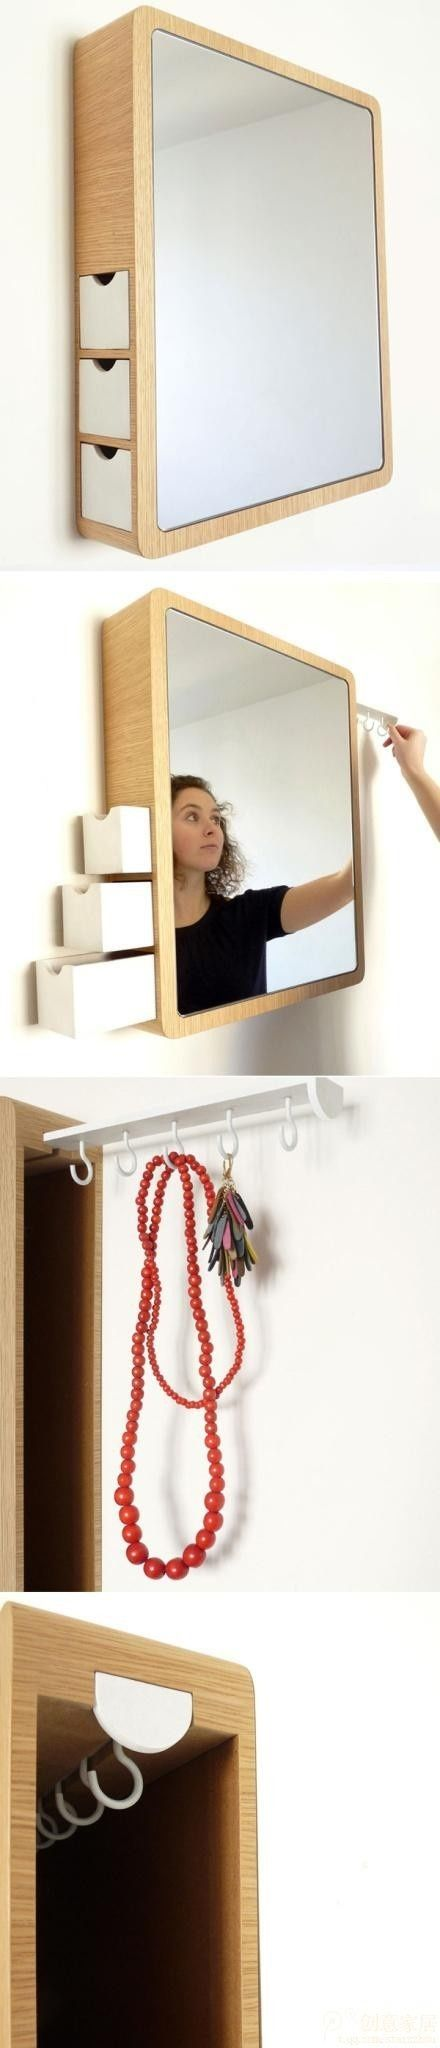 17 best ideas about elegant makeup on pinterest big - Bathroom mirror with hidden storage ...